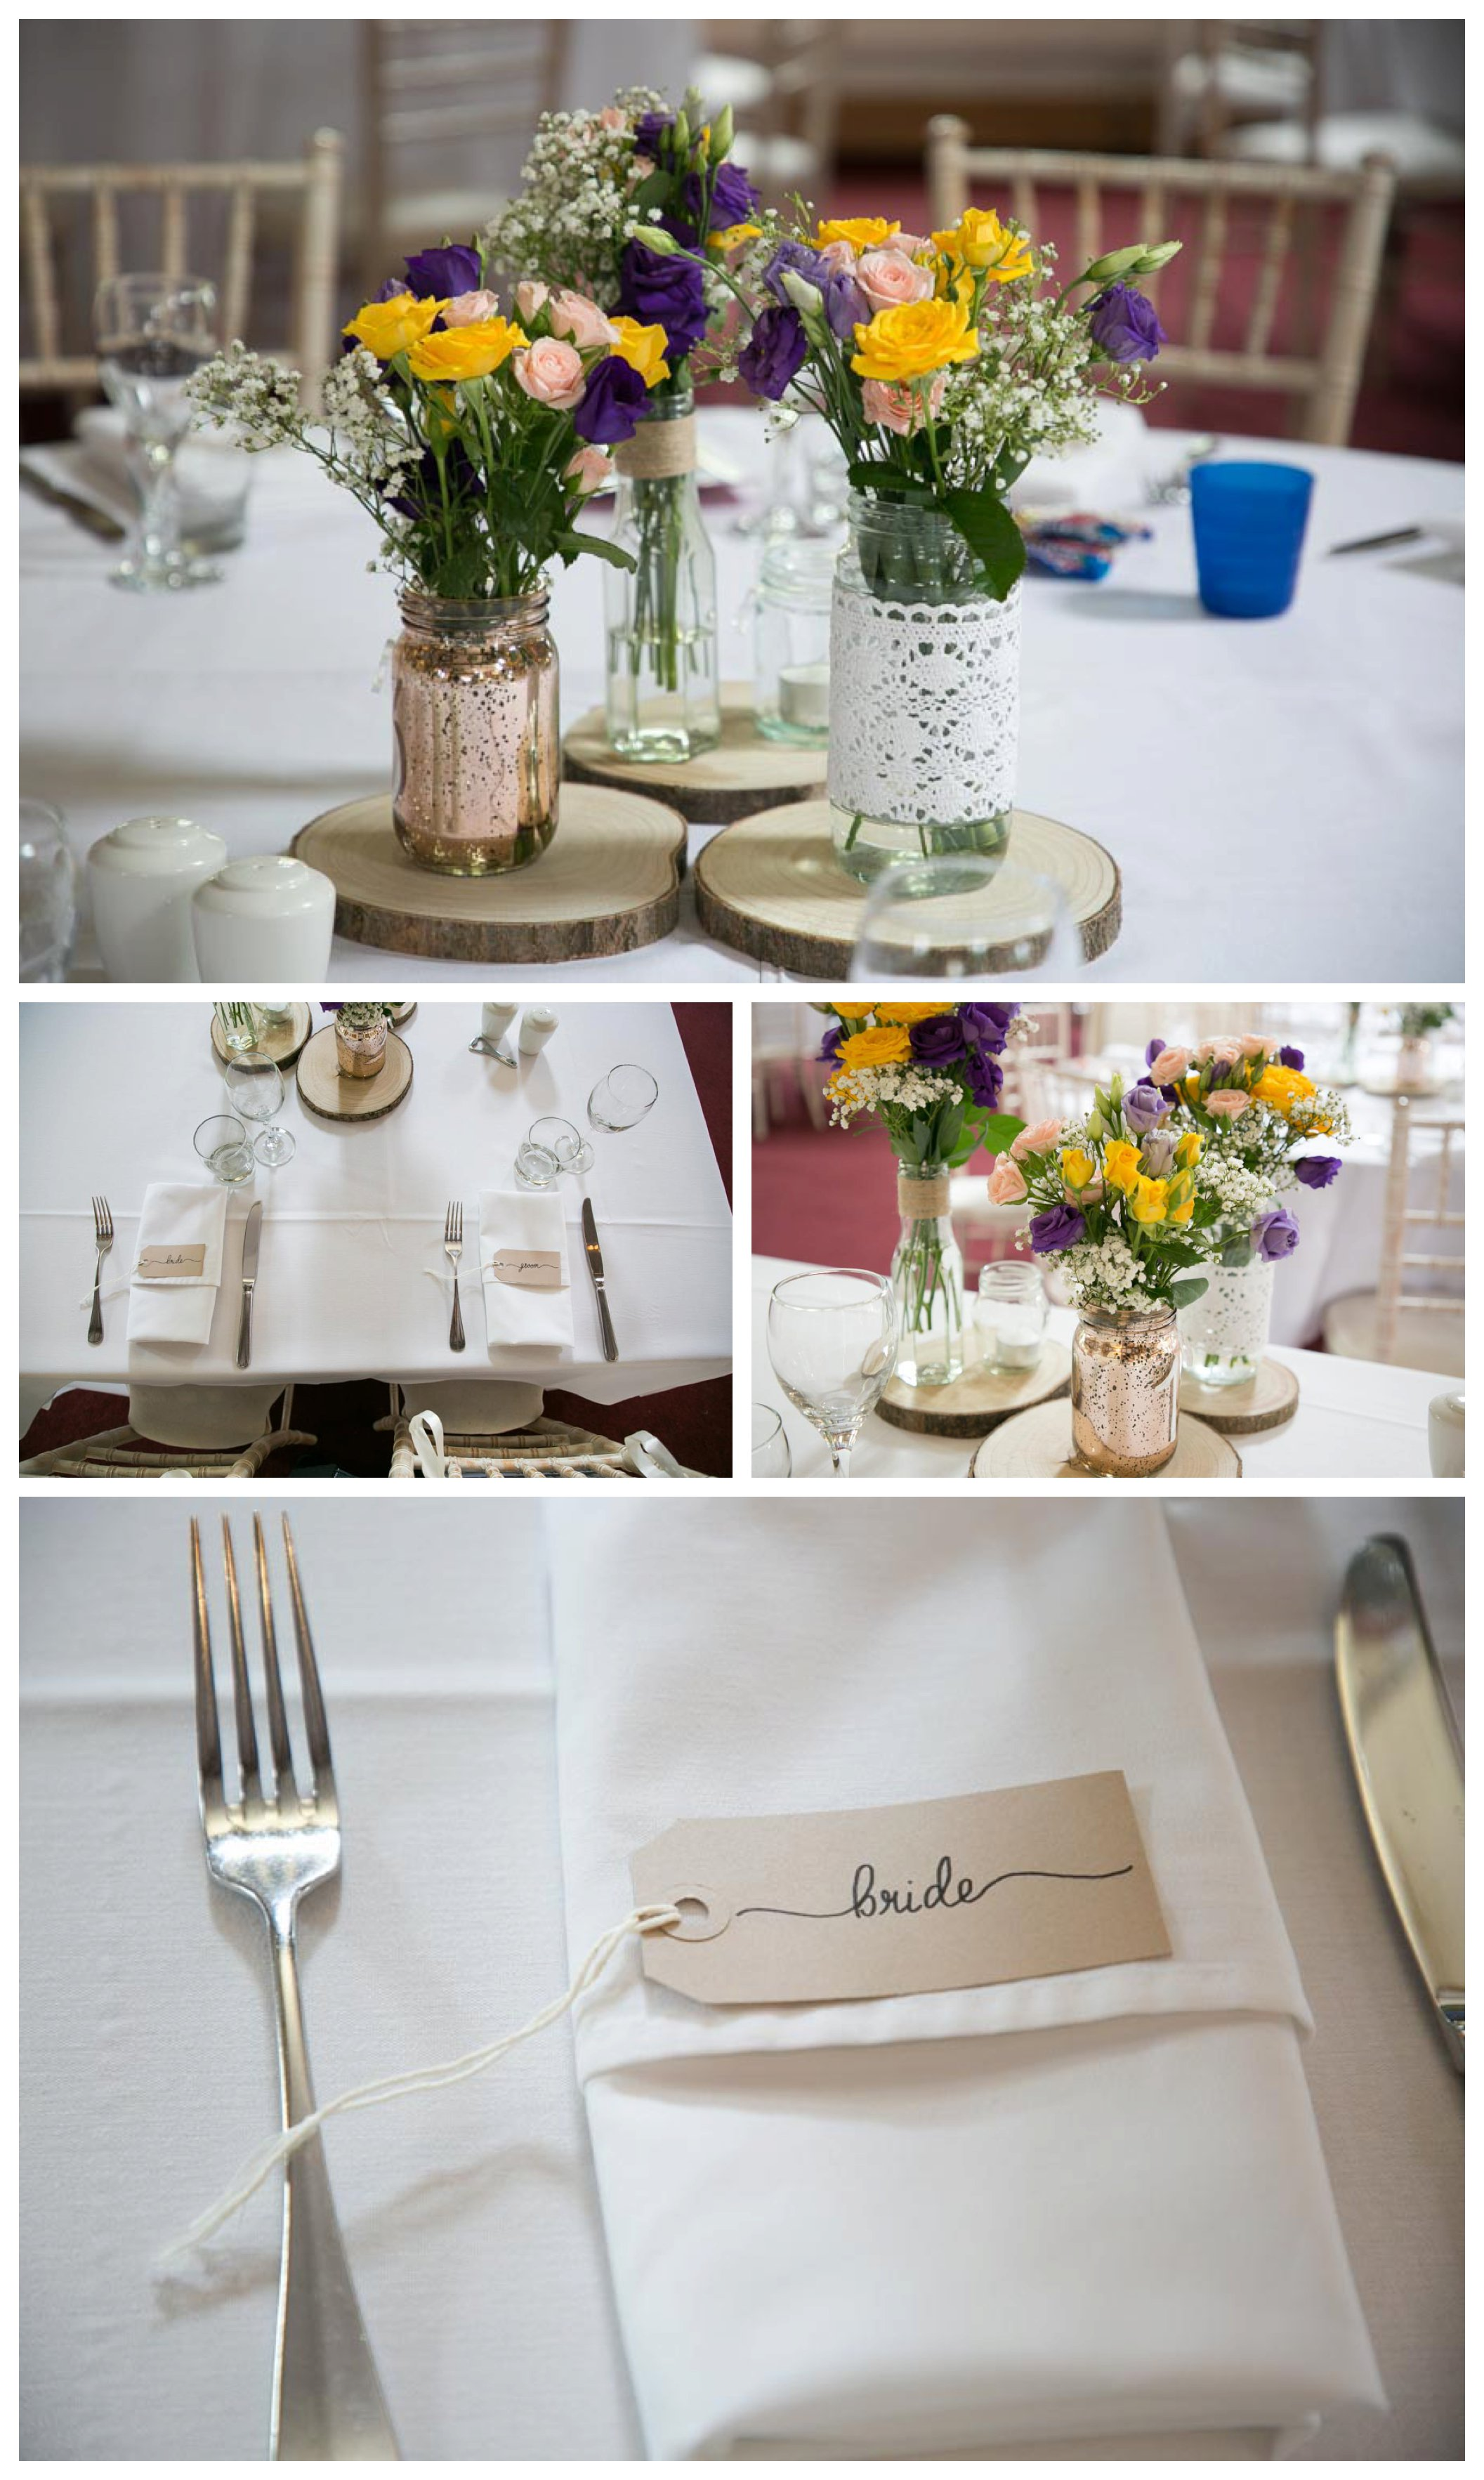 pretty table settings at Reid Rooms wedding breakfast